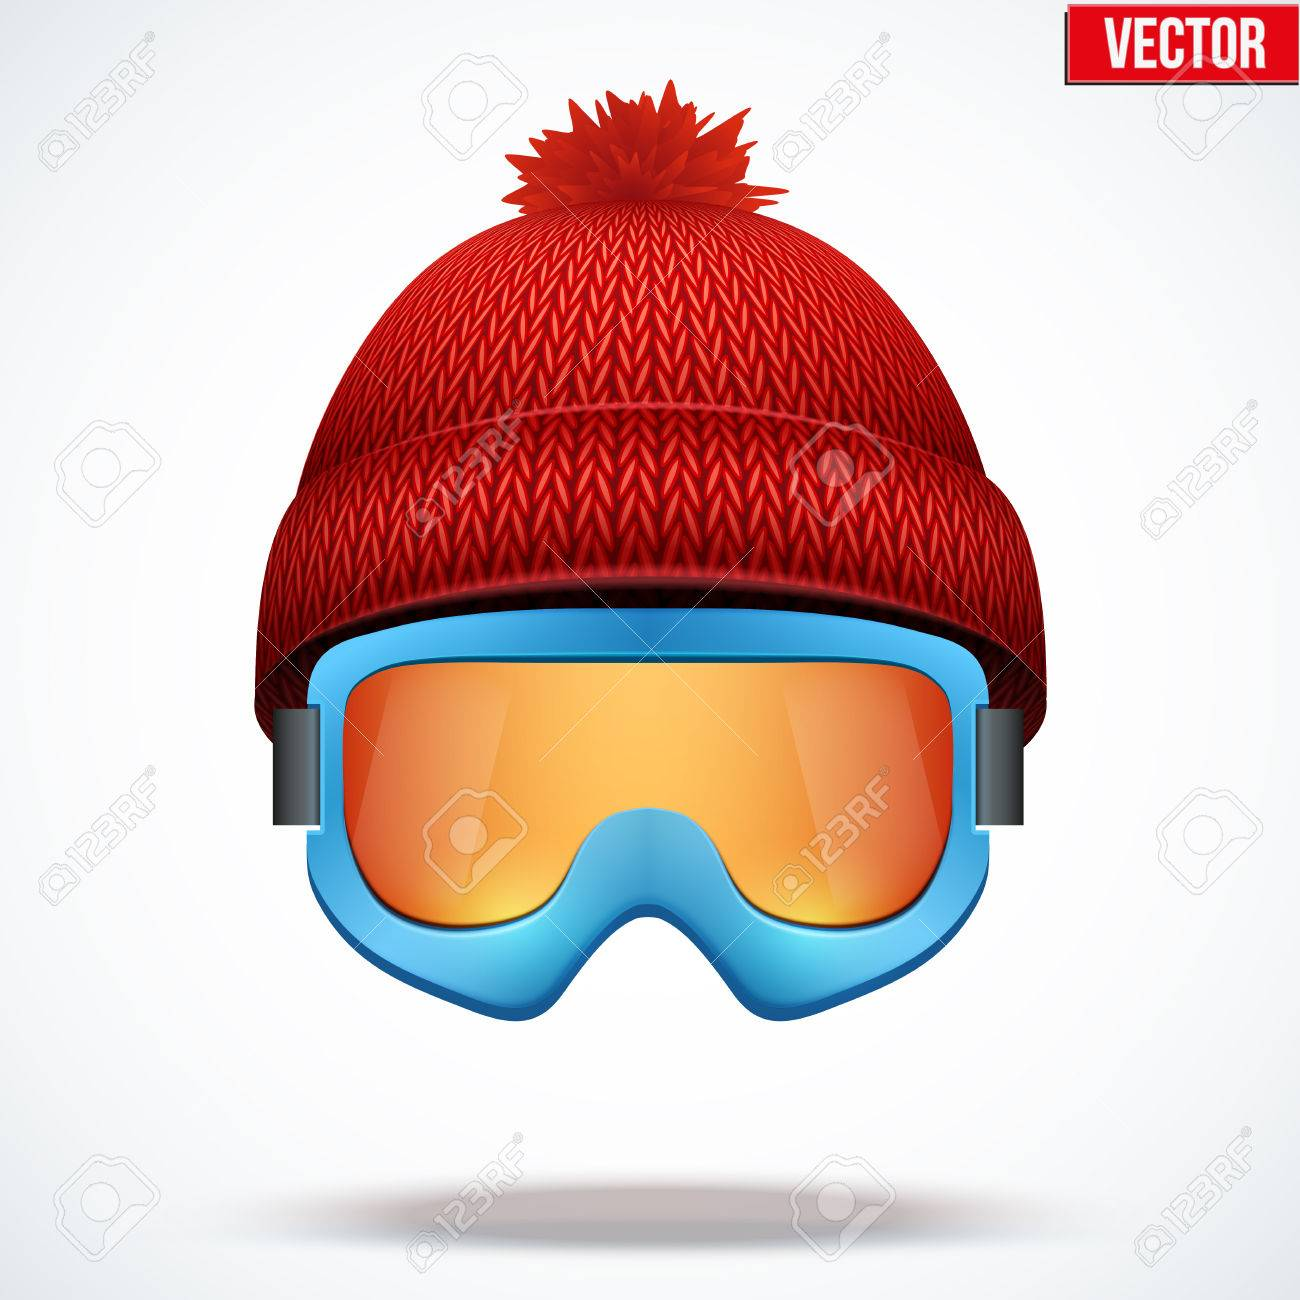 0882e34b5e53 Knitted woolen red cap with snow ski goggles. Winter seasonal sport hat.  Vector illustration